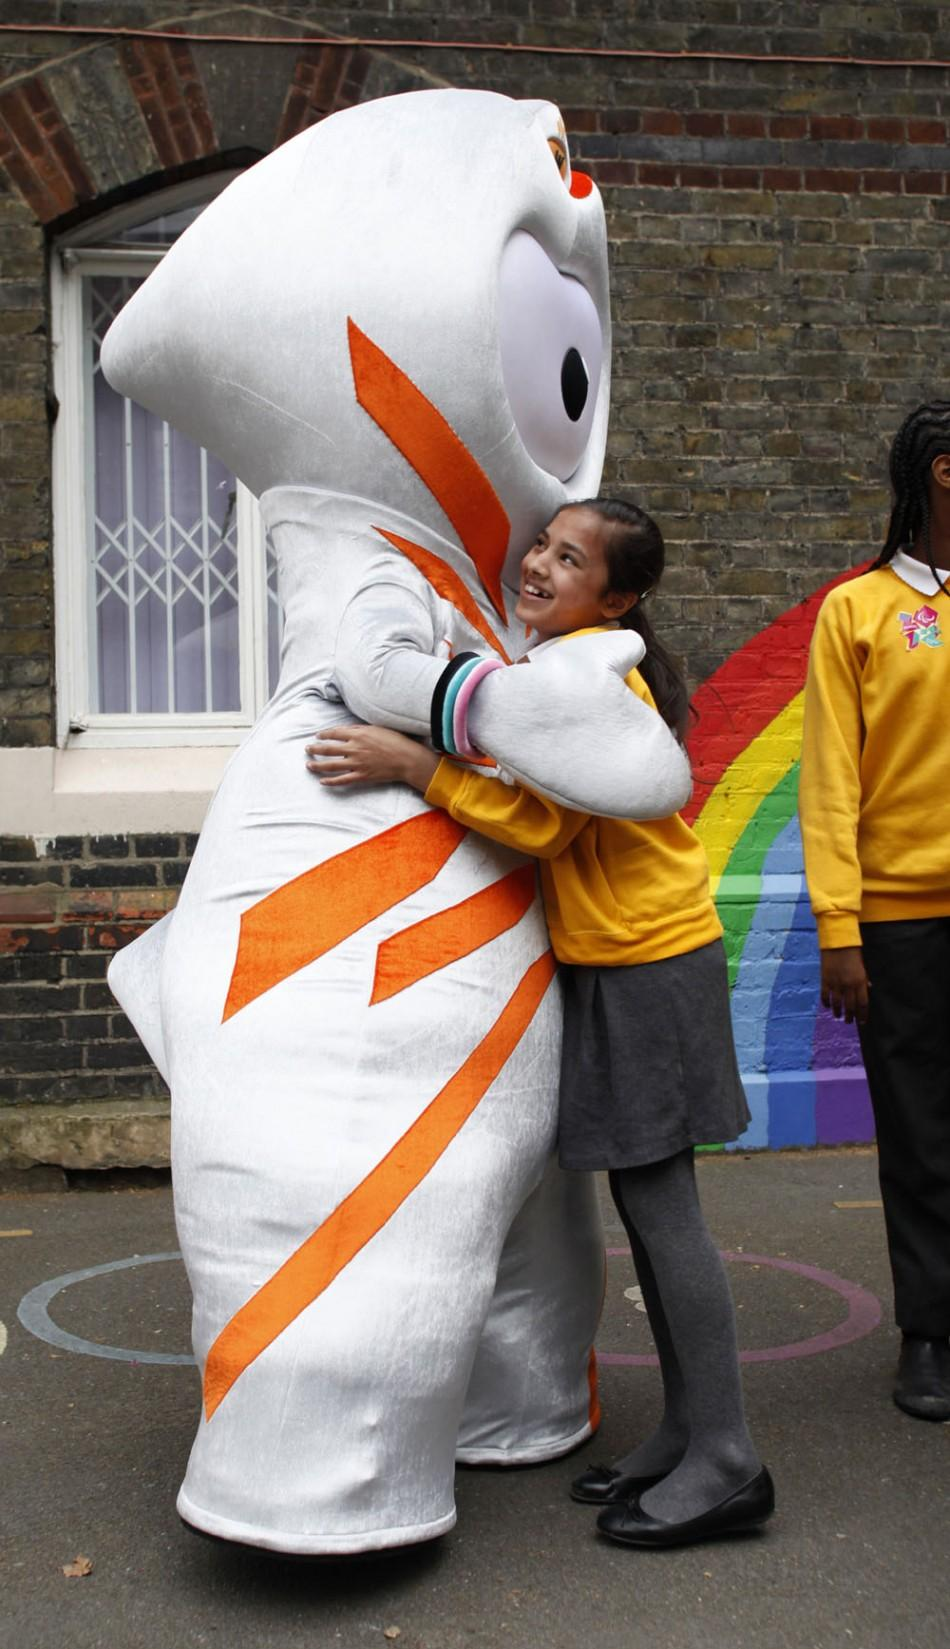 The 2012 Olympic mascot Wenlock hugs a student